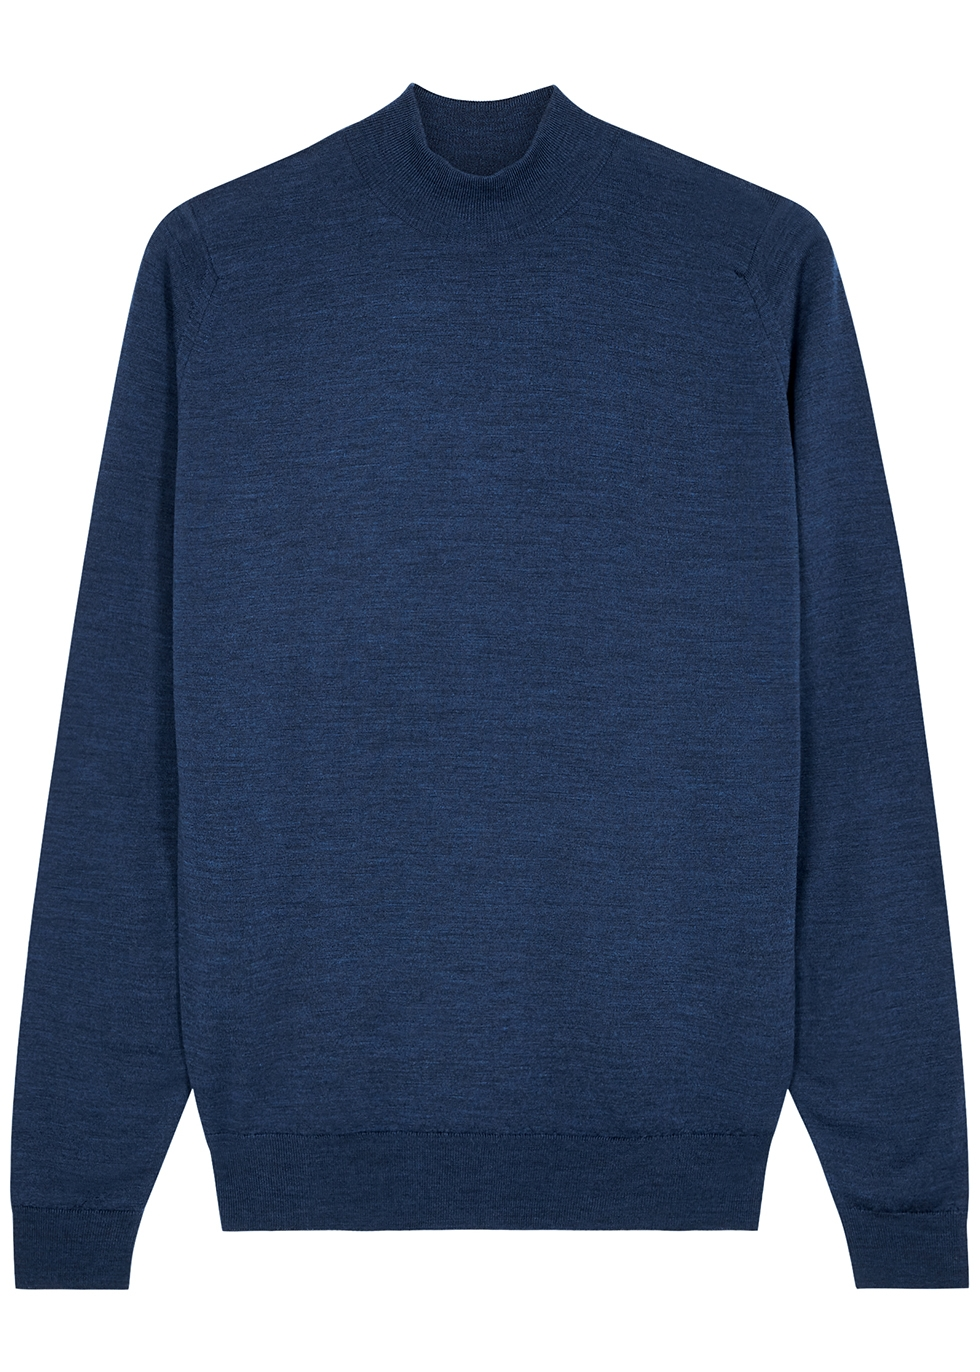 Harcourt blue wool jumper